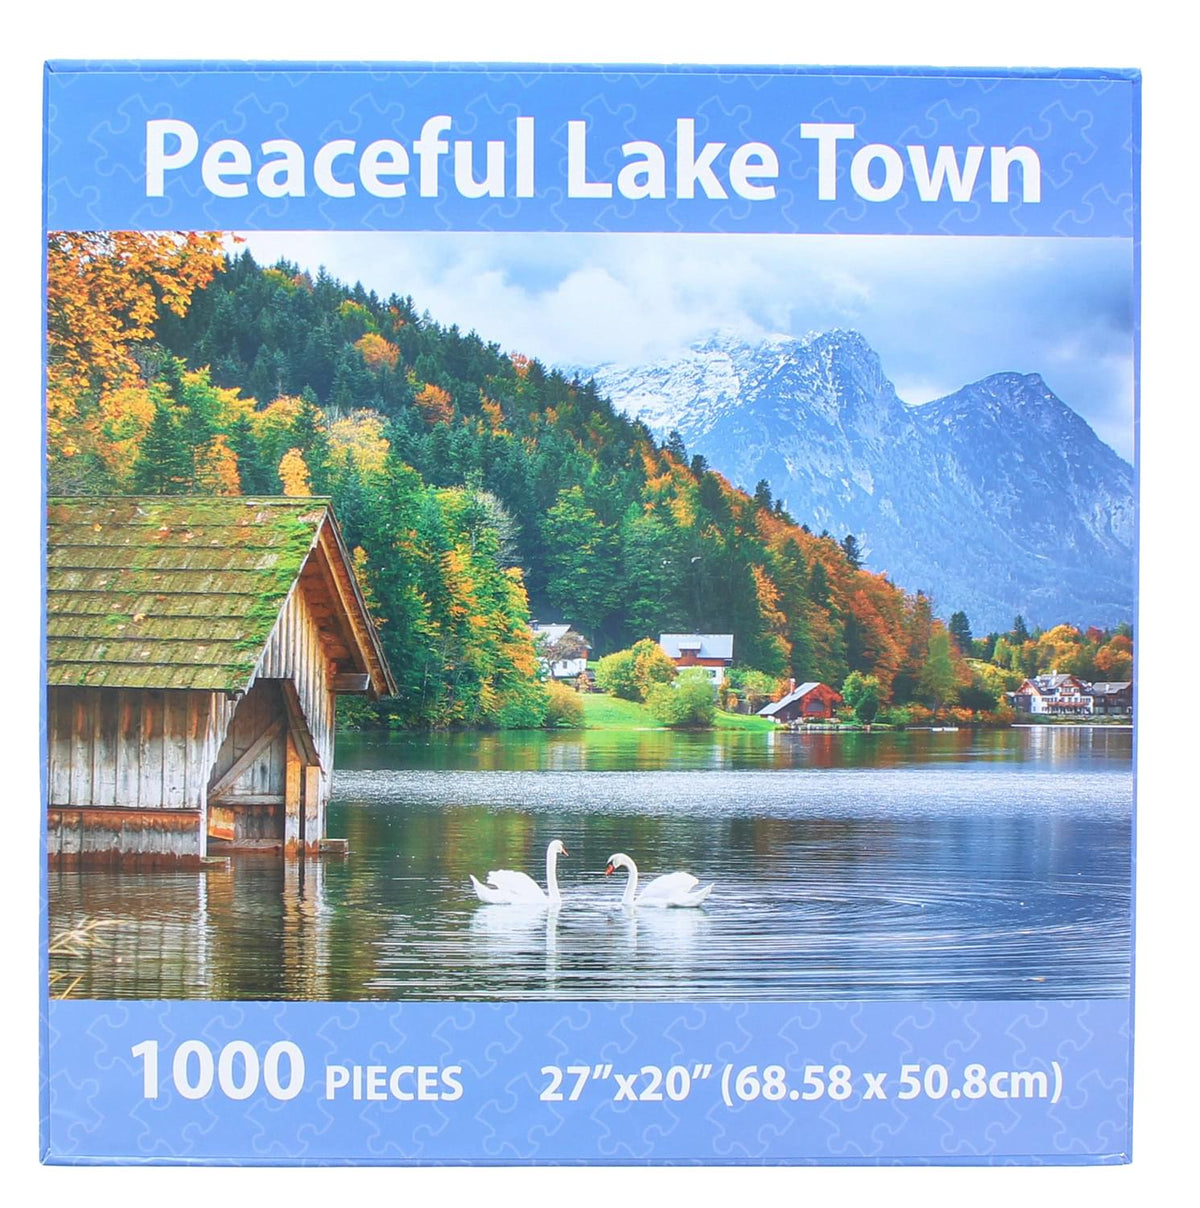 Peaceful Lake Town 1000 Piece Jigsaw Puzzle